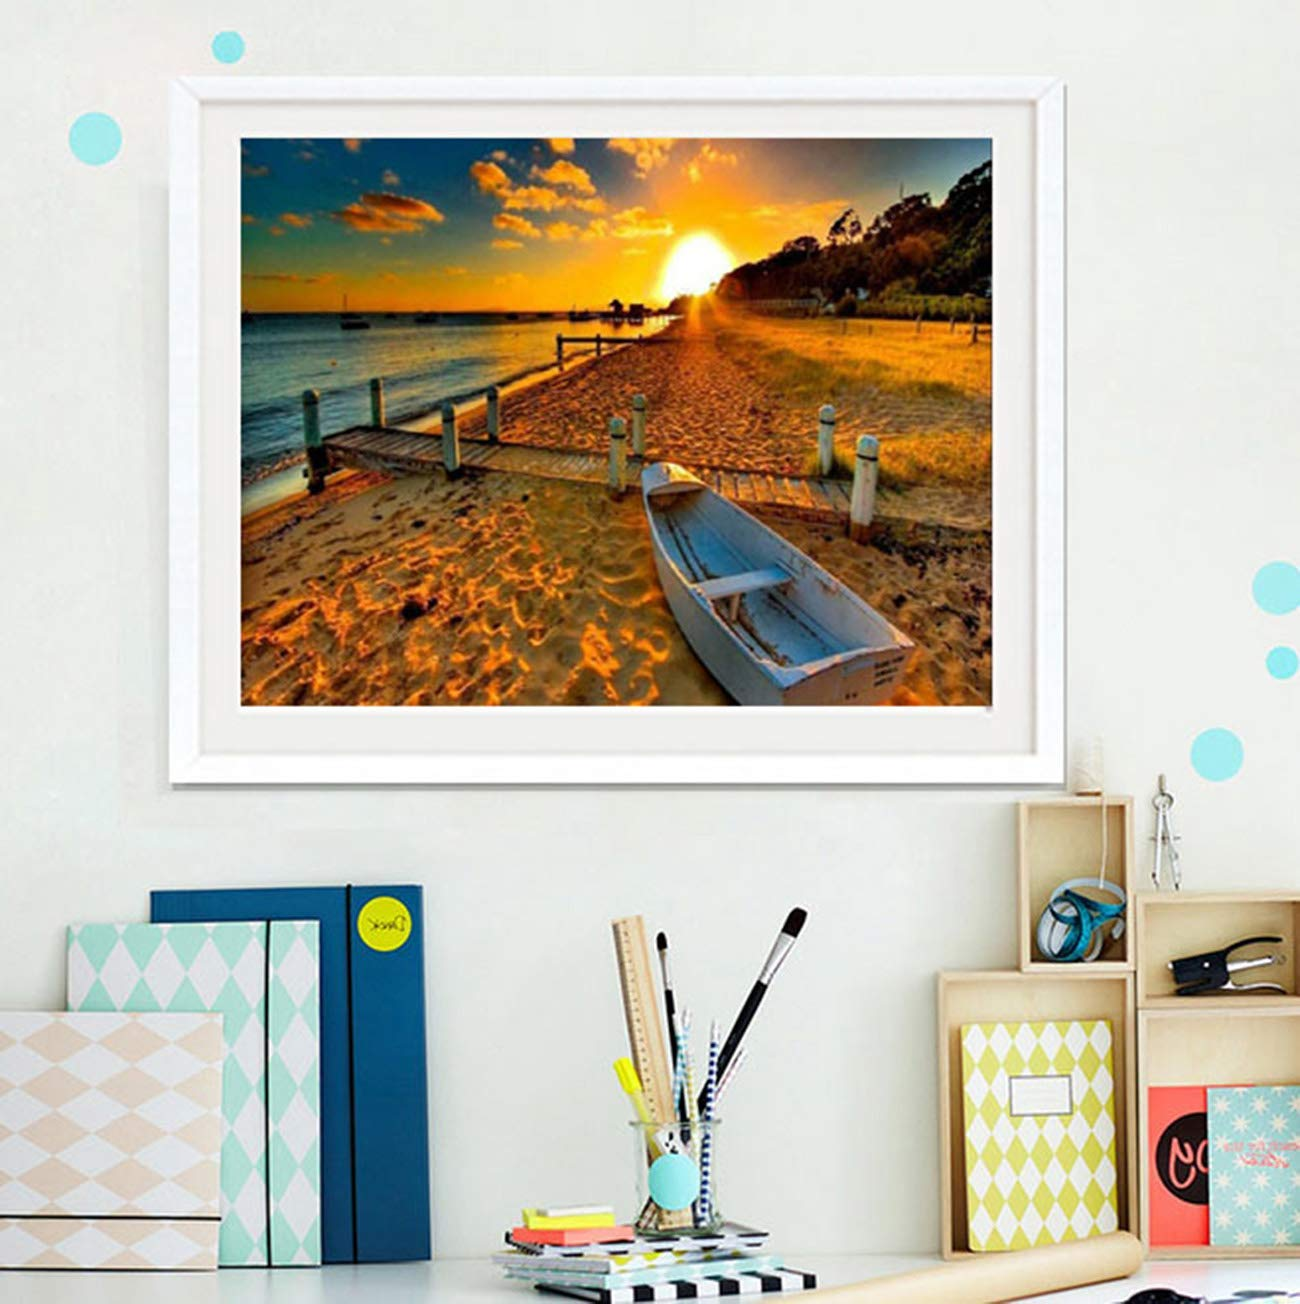 Sunset by The Sea DIY 5D Diamond Painting Kits for Adults Paint with Diamonds for Home Wall Decor Gift Arts Craft B Diamond Painting by Numbers for Adults Diamond Painting Kit 16x12 Inch